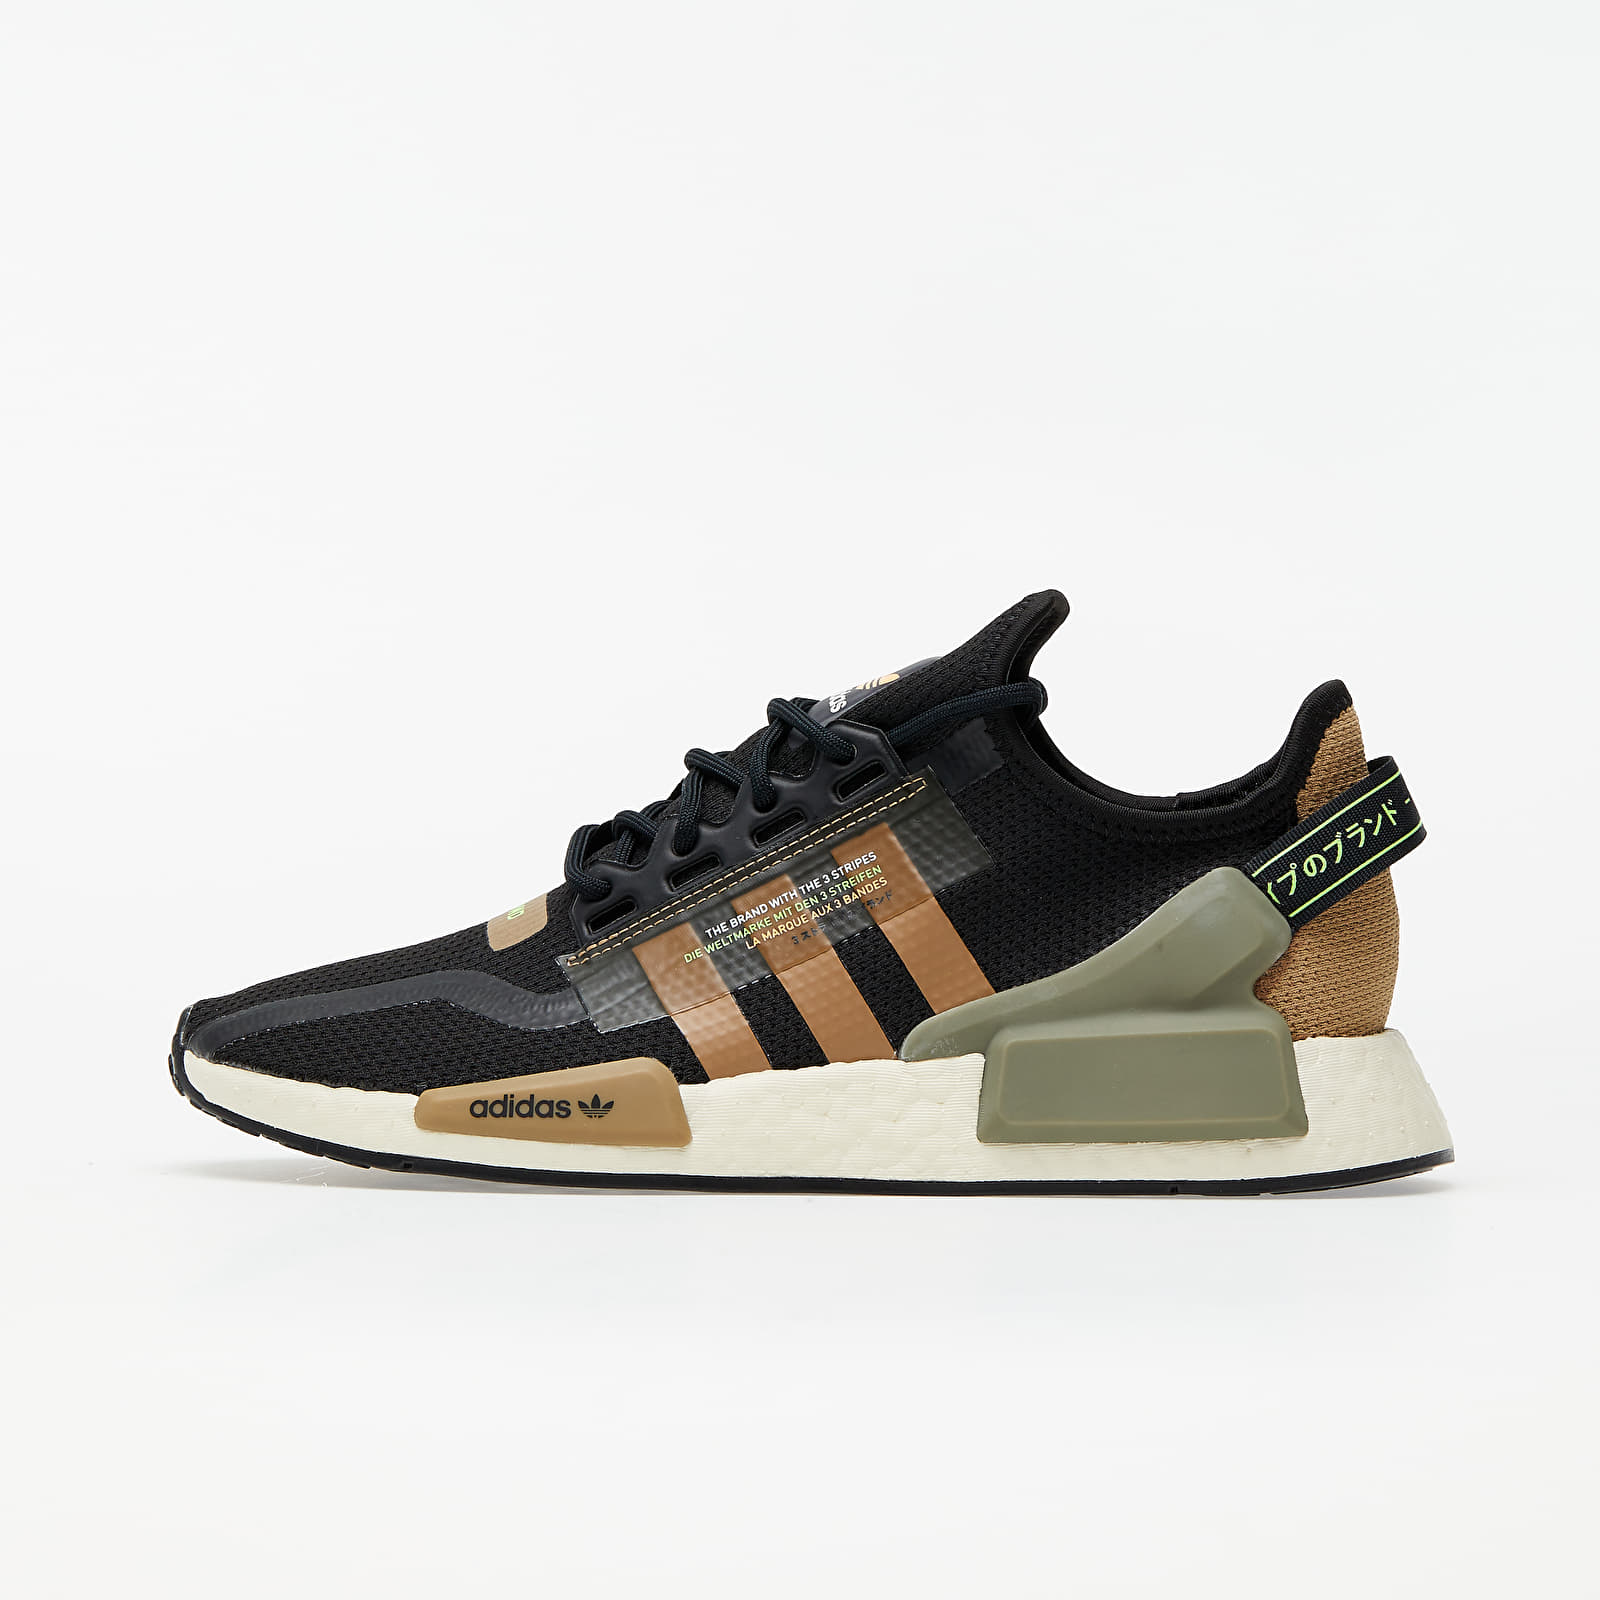 Men's shoes adidas NMD_R1.V2 Core Black/ Core Black/ Cardboard